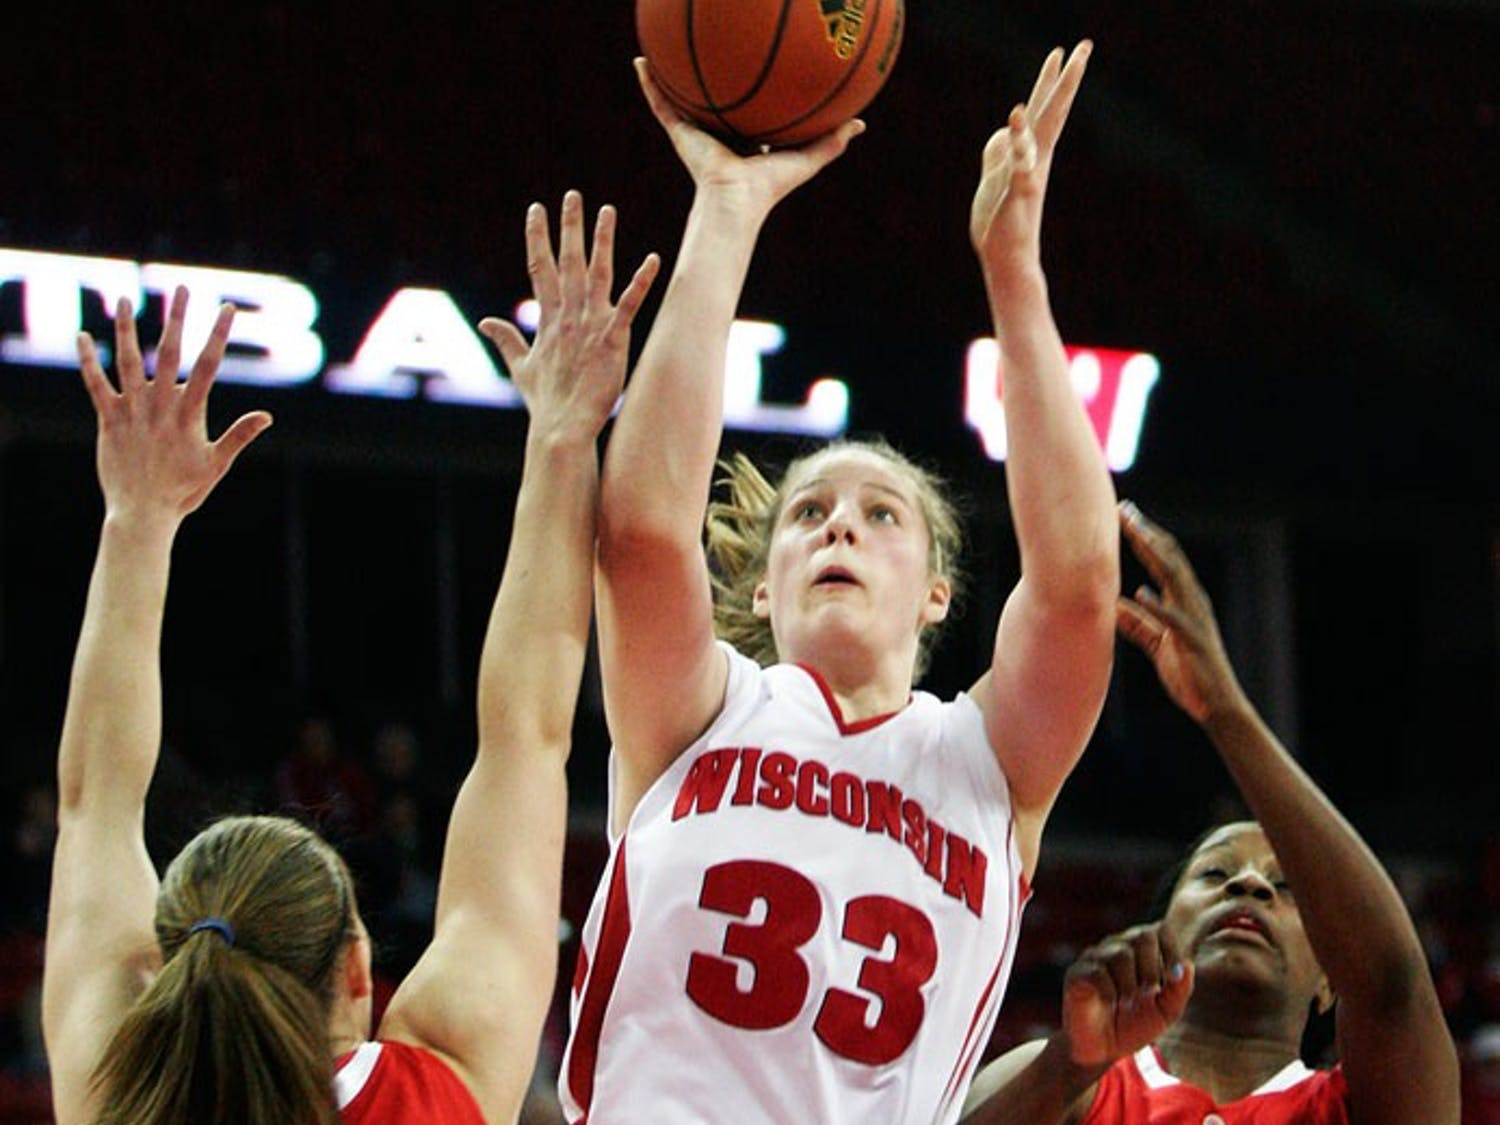 Badgers play Buckeyes tight but come up short